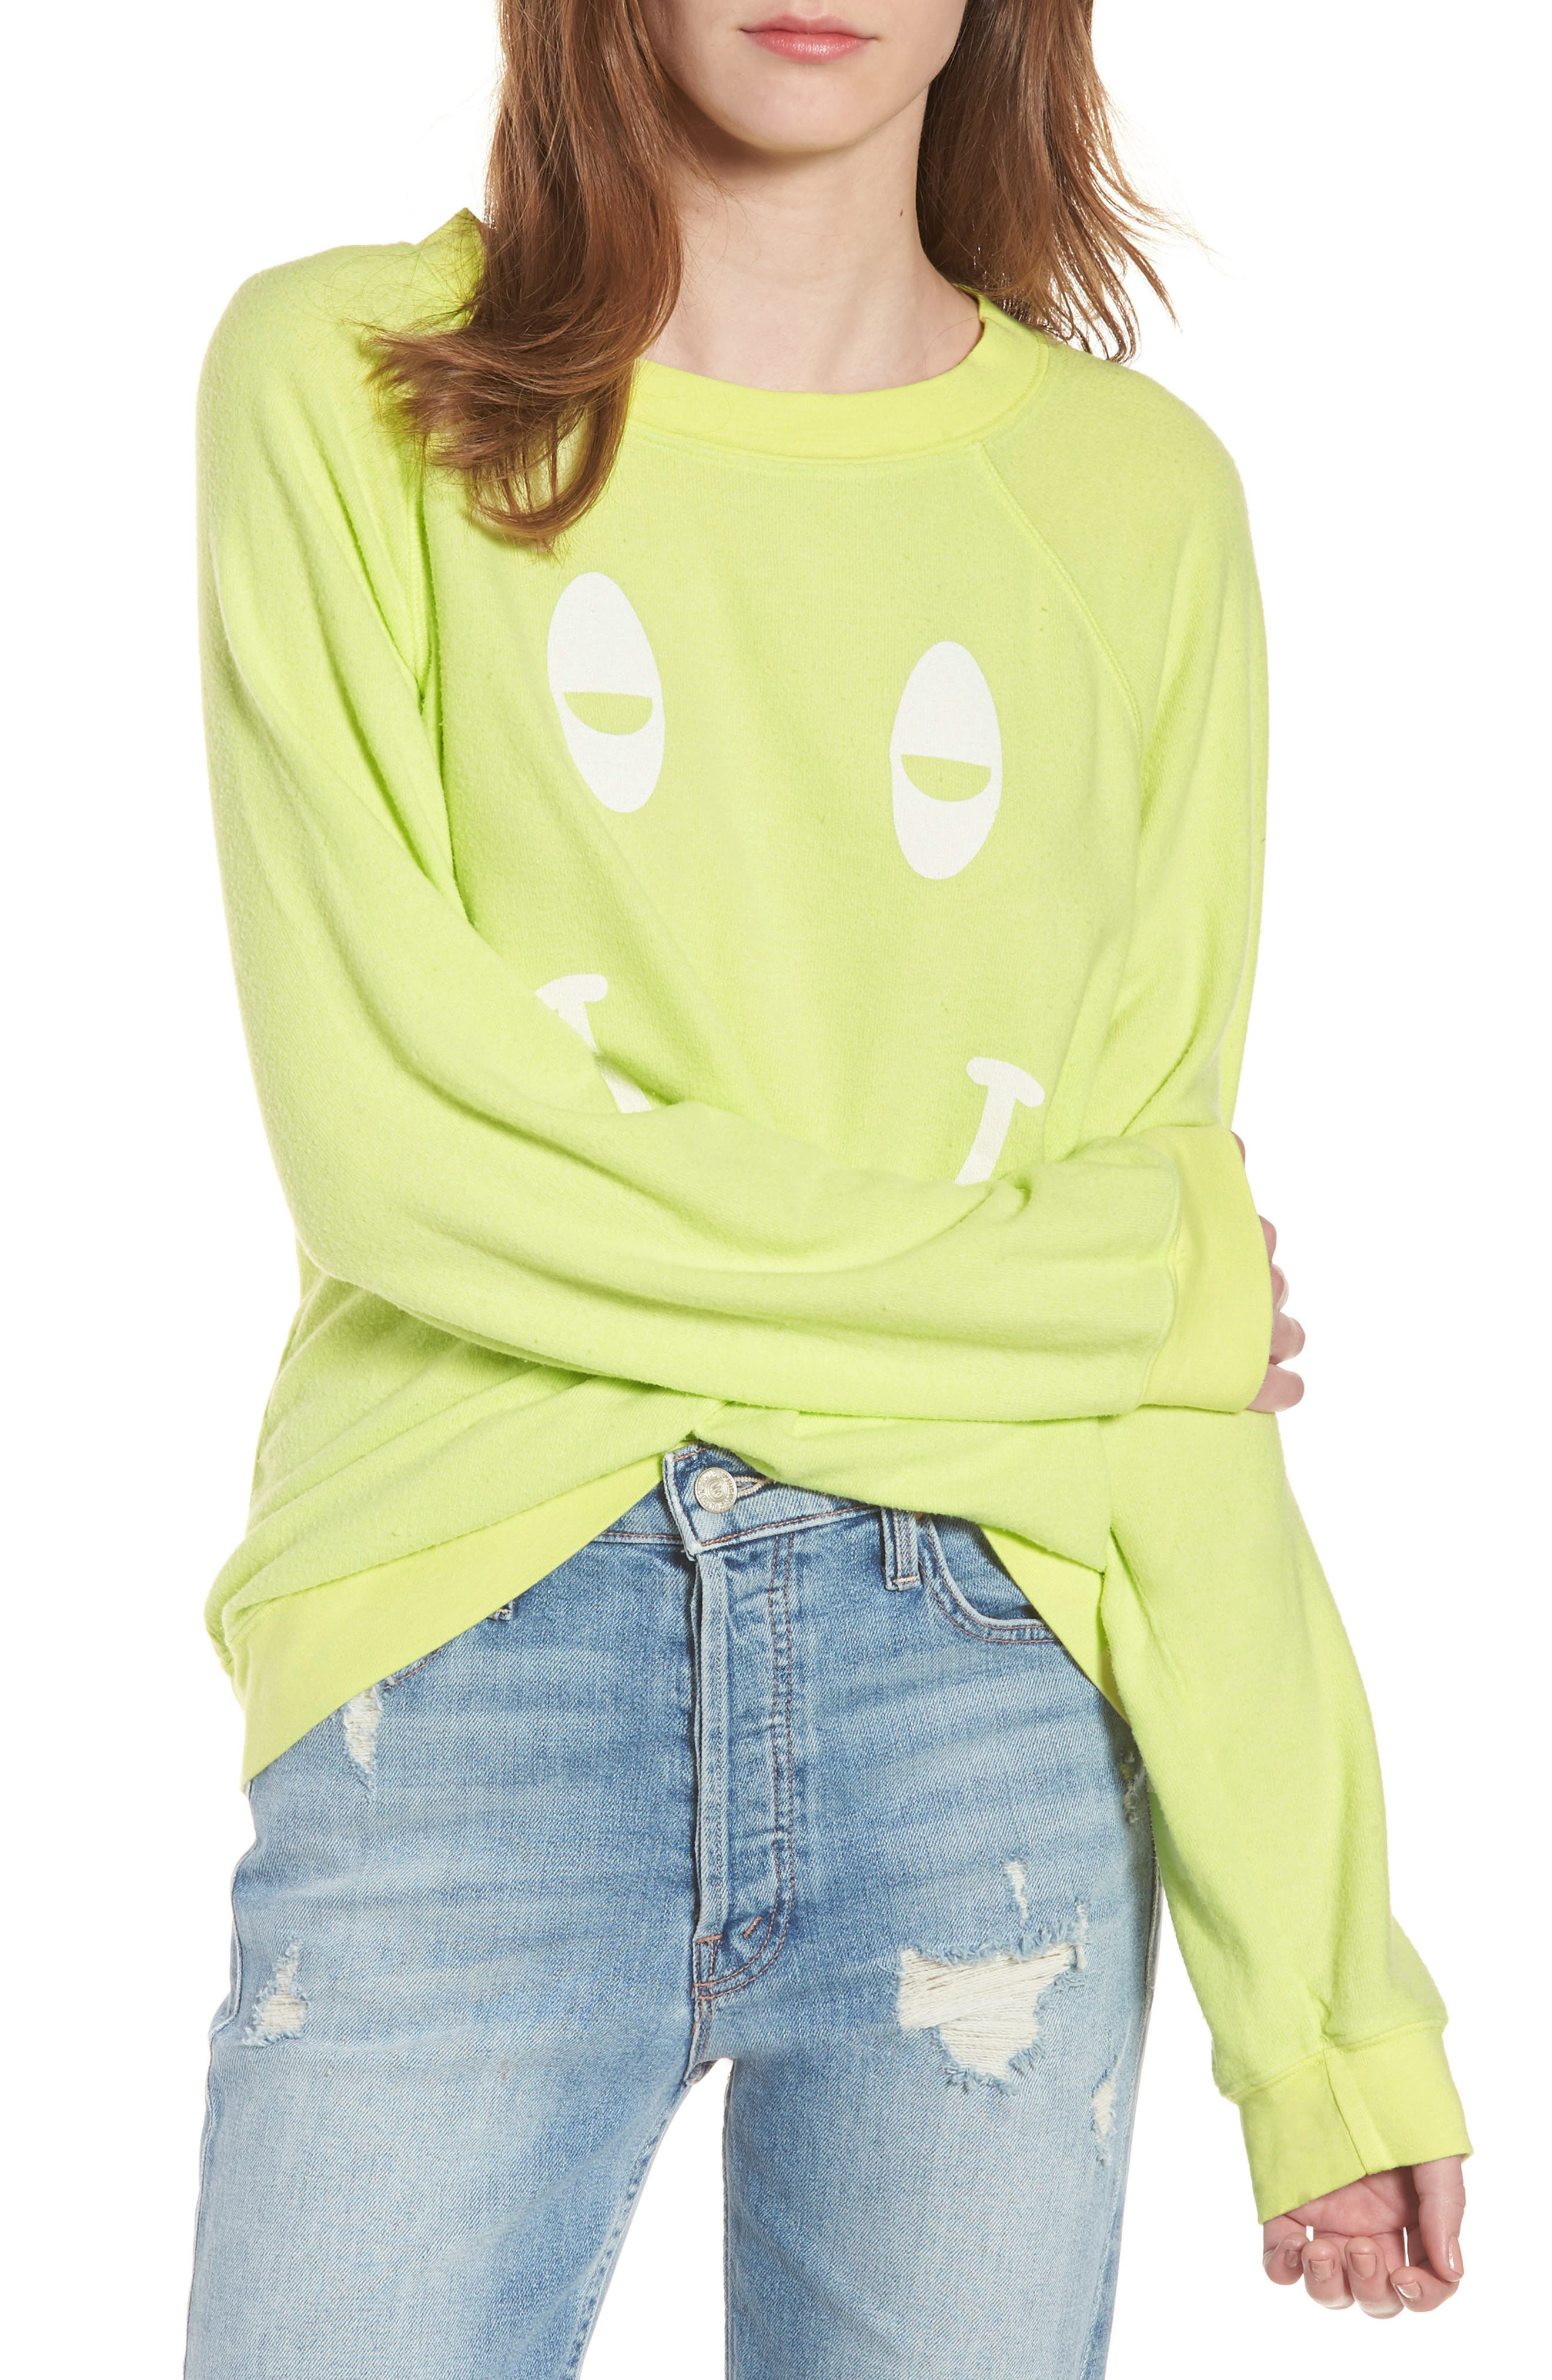 Sleepy Smiley Sommers Sweatshirt,                             Main thumbnail 1, color,